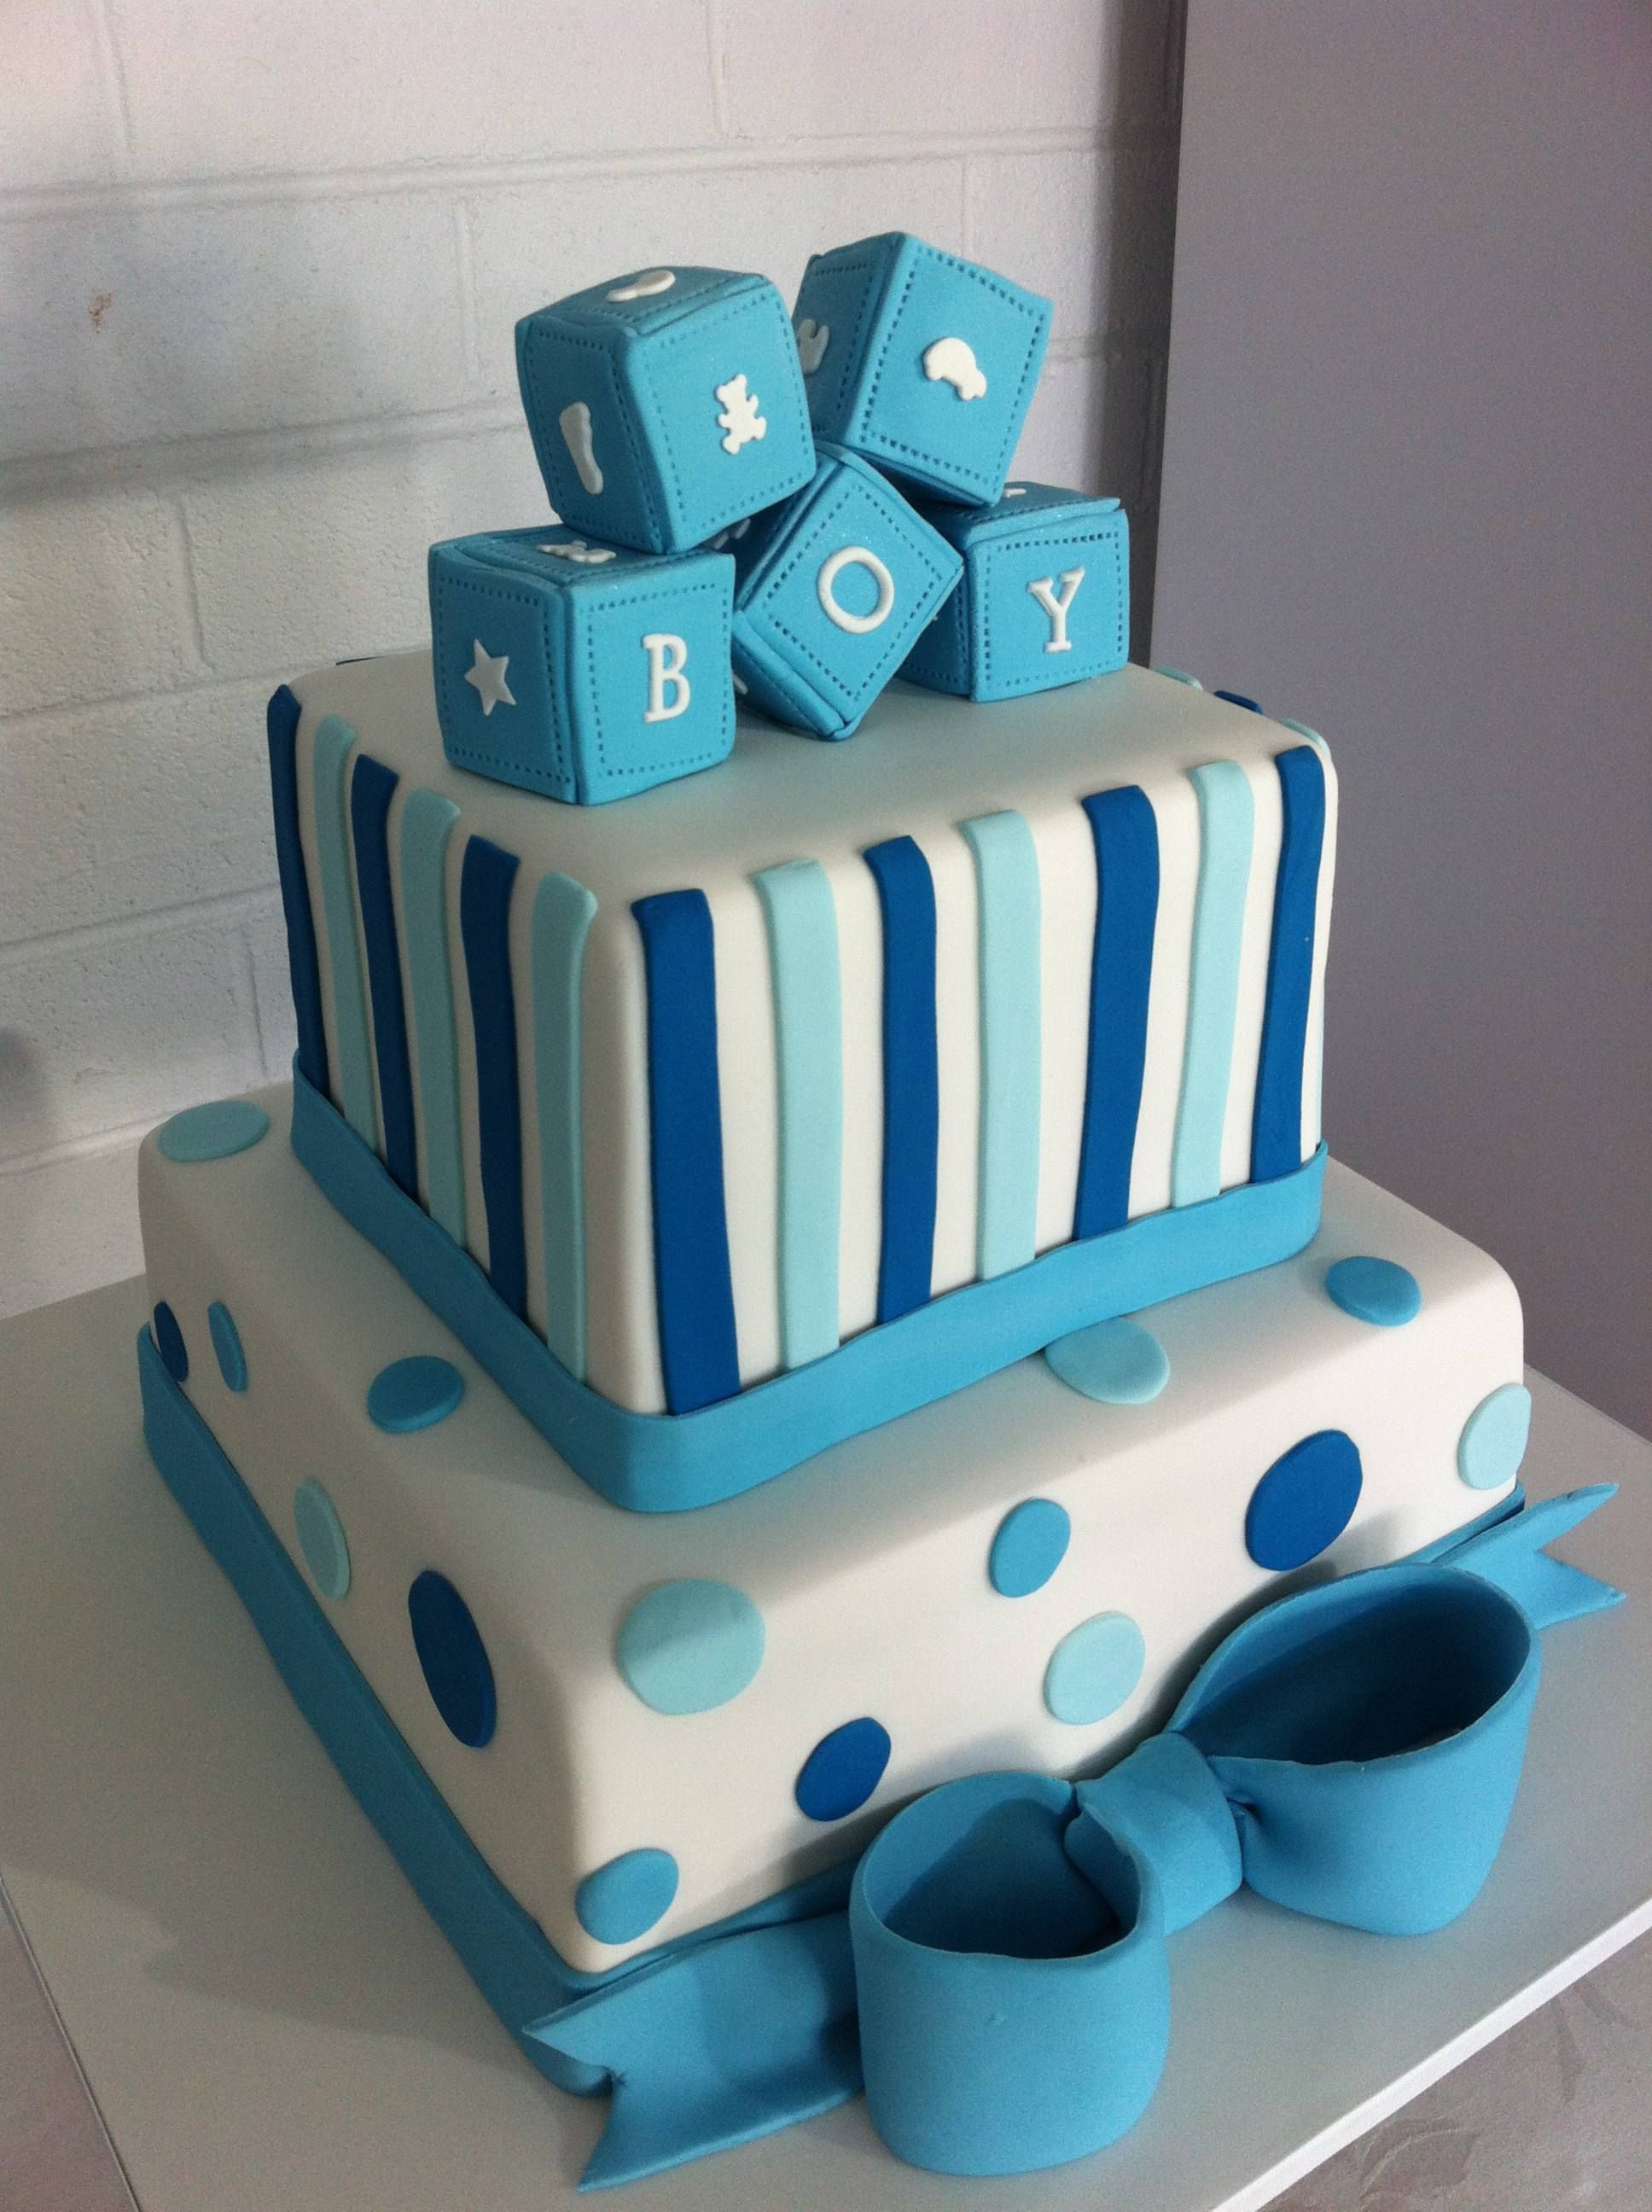 Amazing Boy Baby Shower Cakes | Cakesdesign Our New Creations Other regarding Baby Boy Shower Cakes